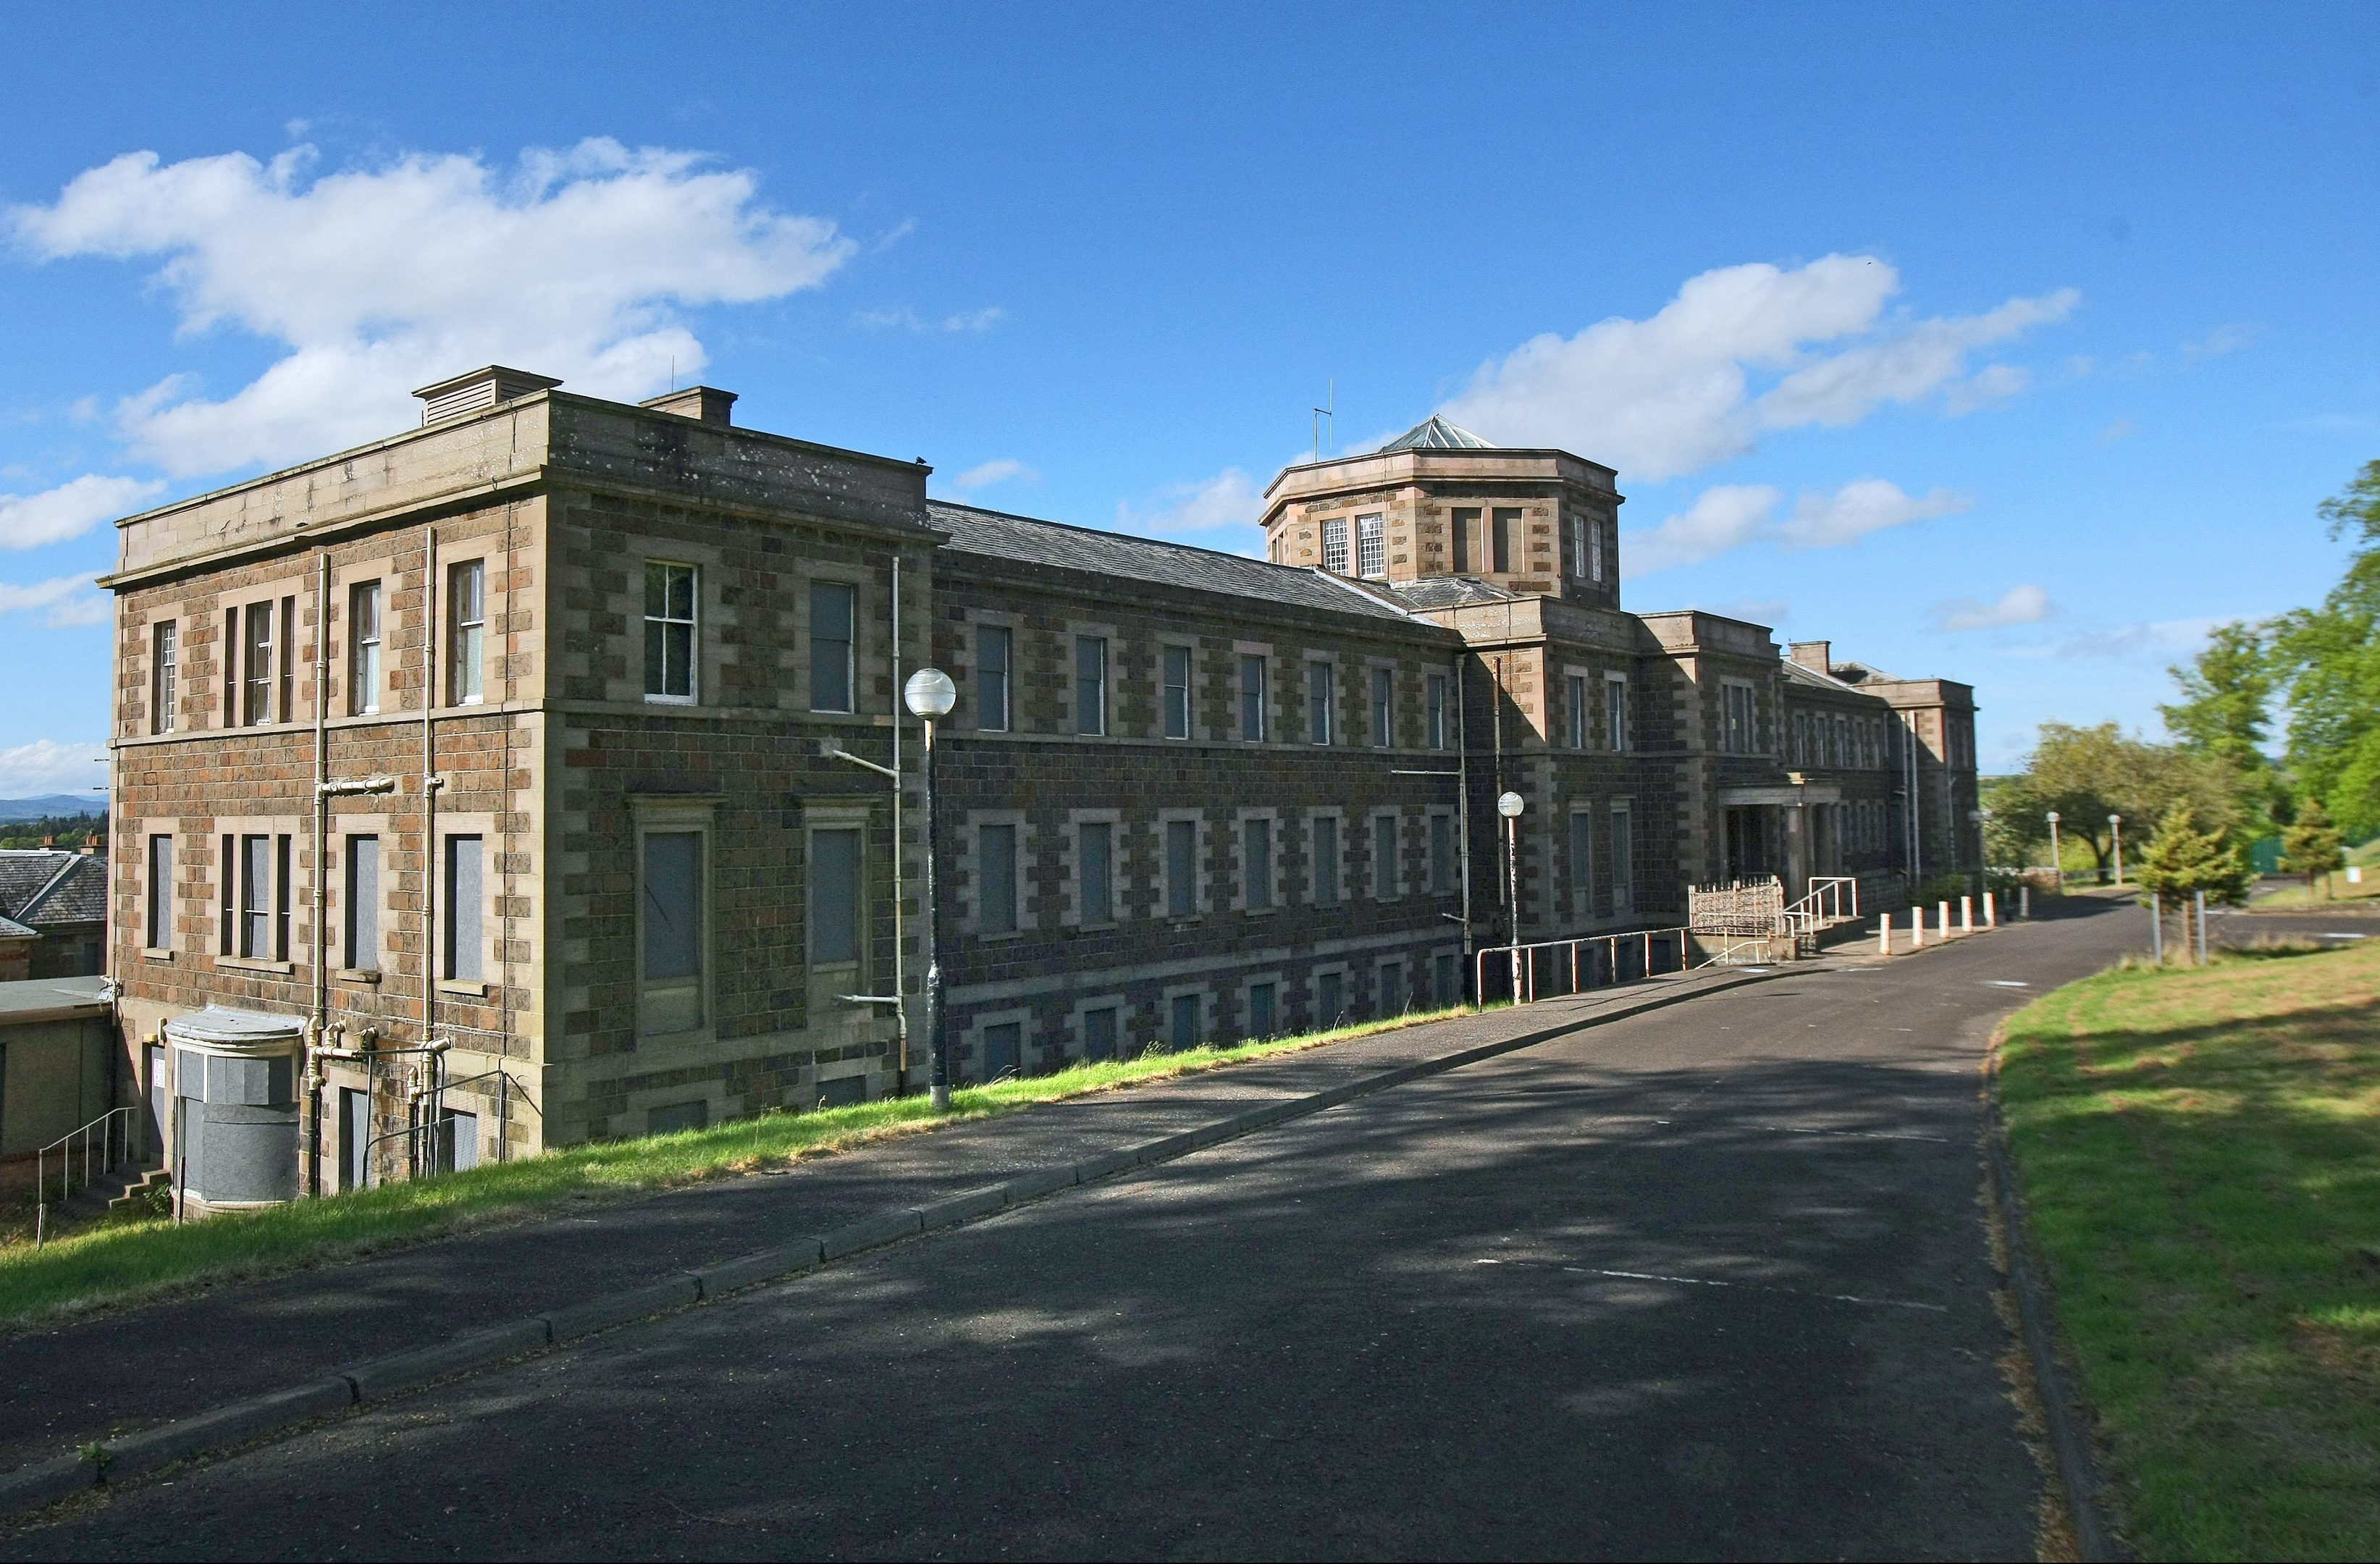 The historic former Murray Royal Hospital which could be converted into flats.